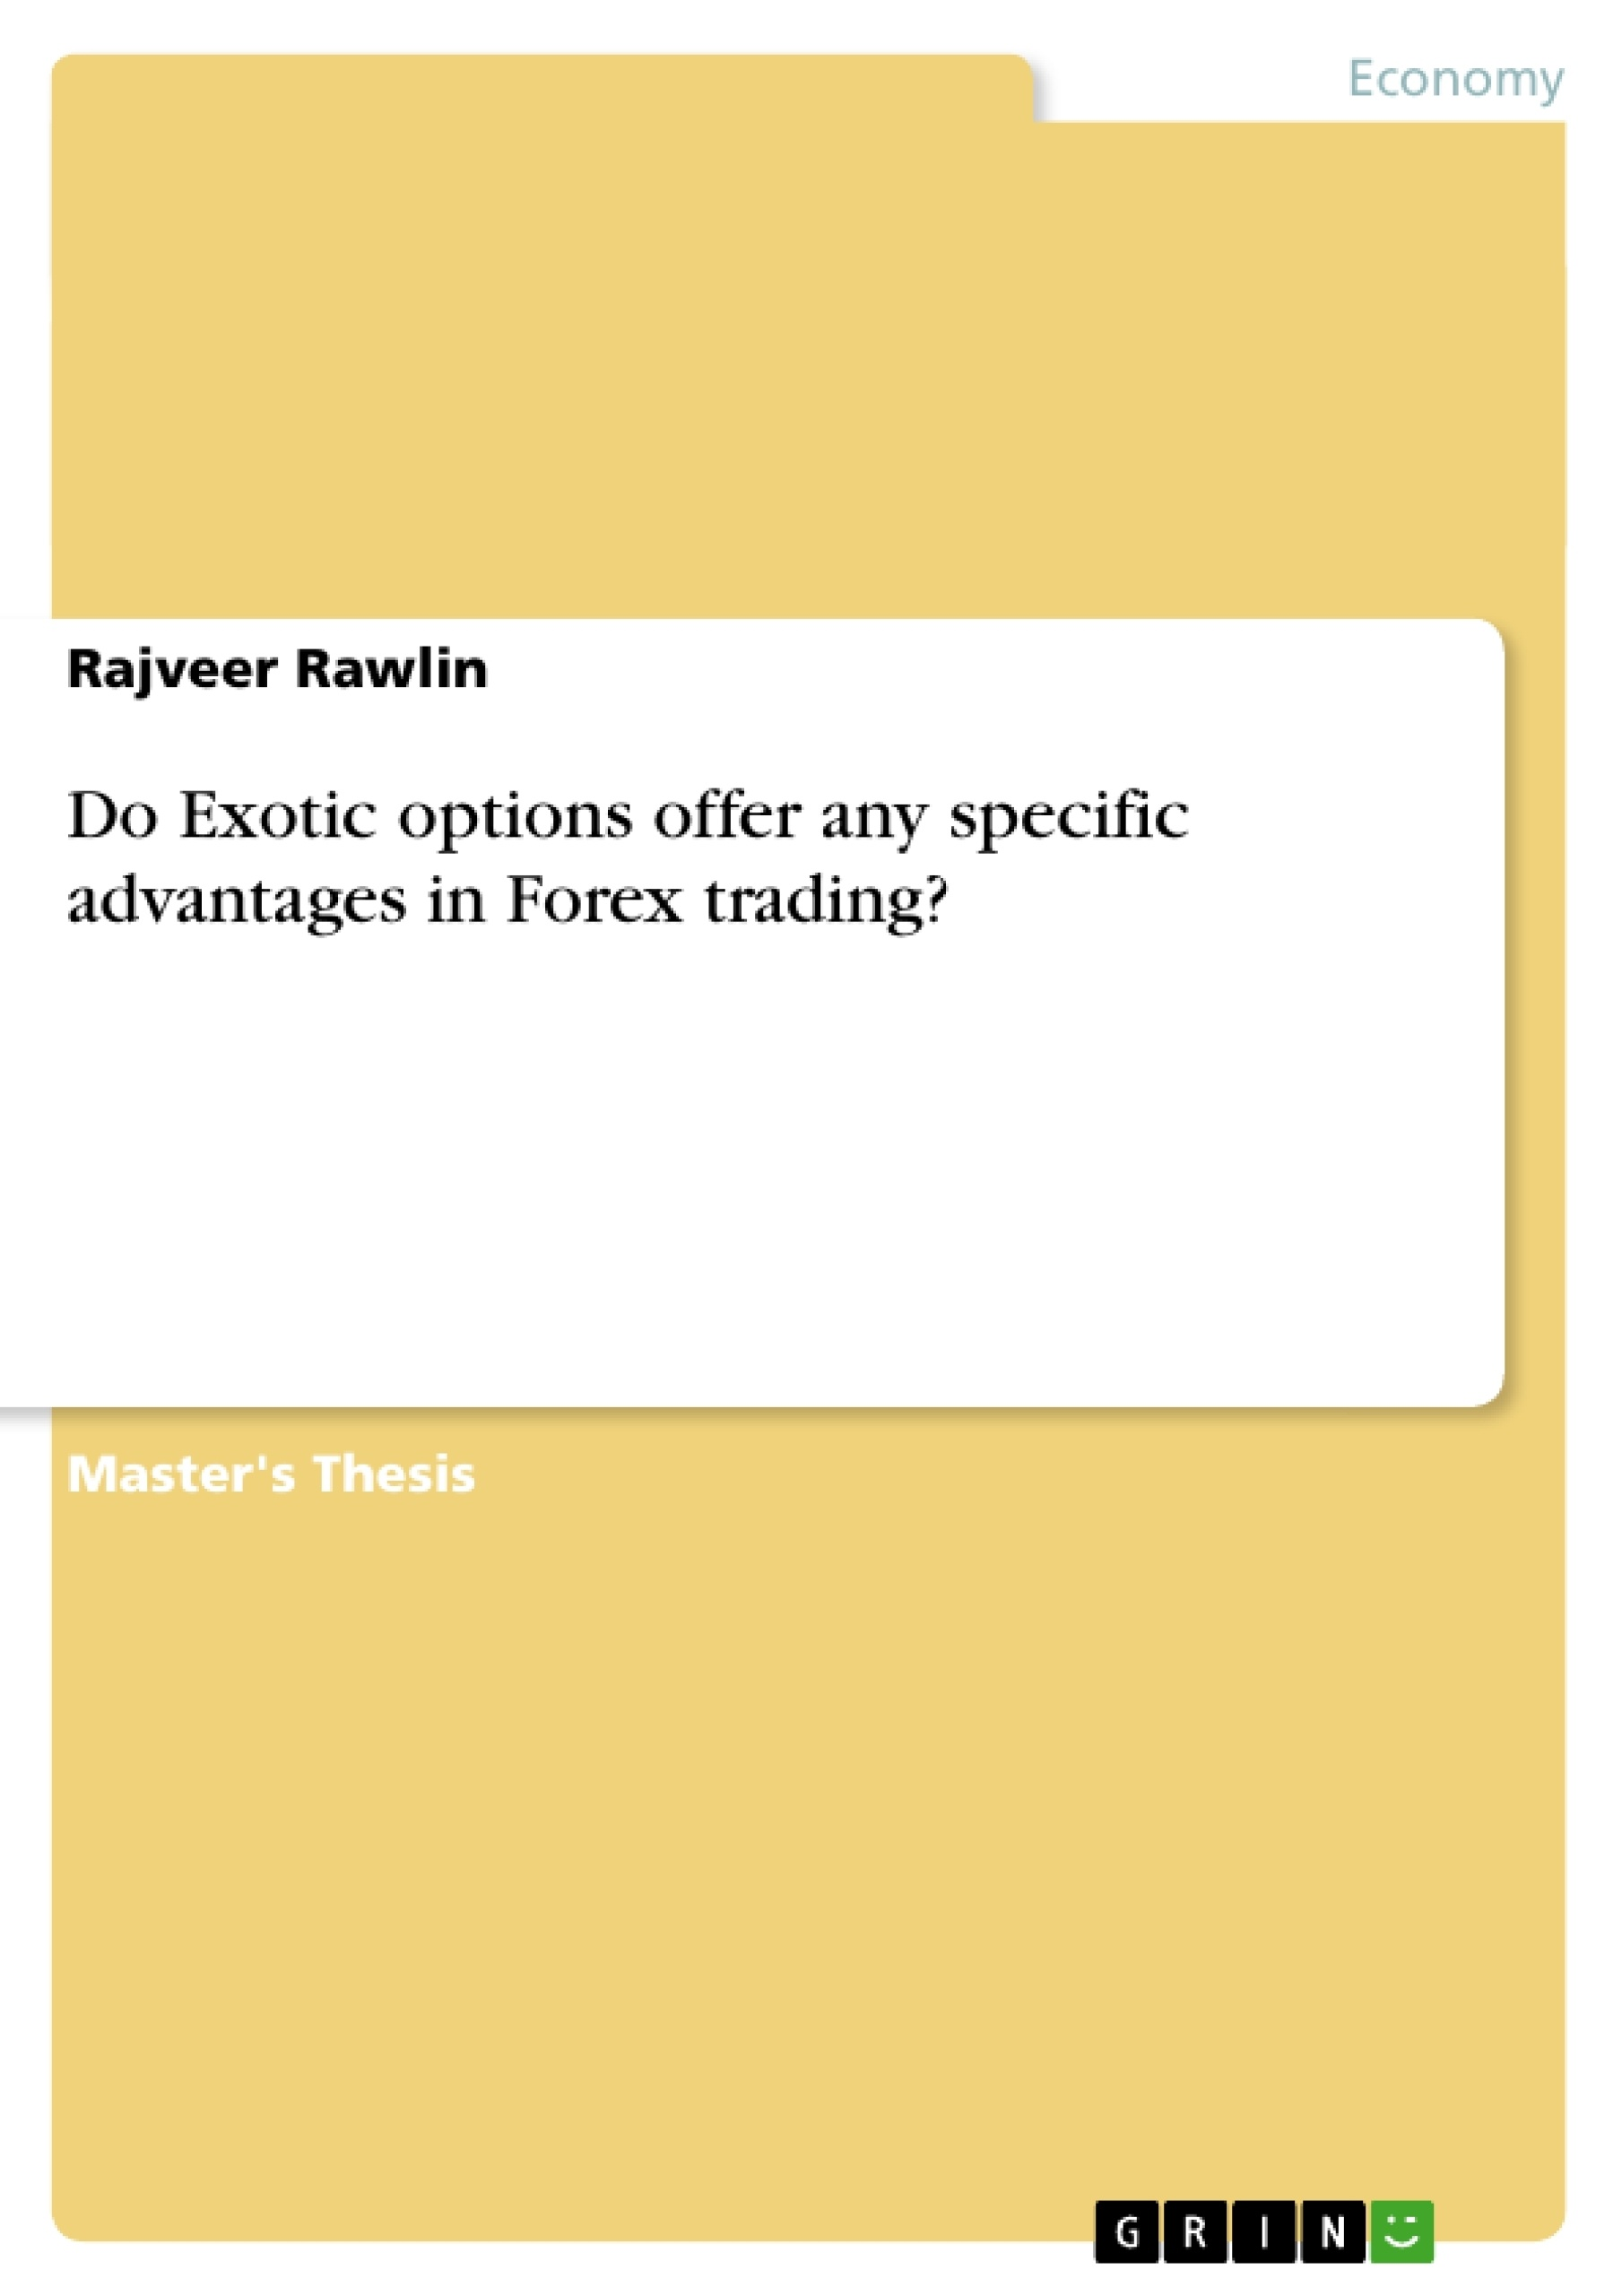 Title: Do Exotic options offer any specific advantages in Forex trading?